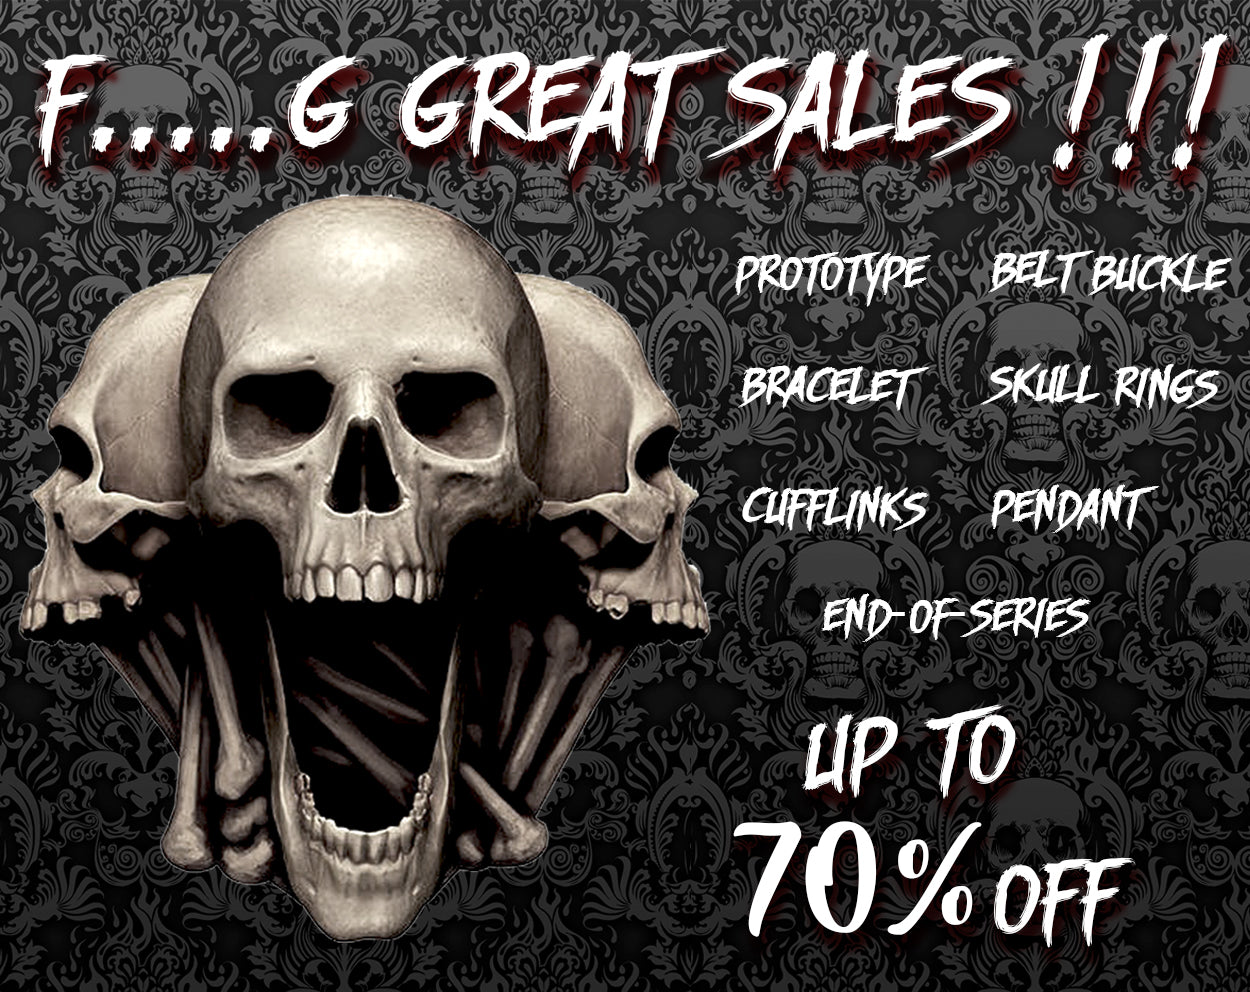 fucking great sales 2 Saints up to 70% off